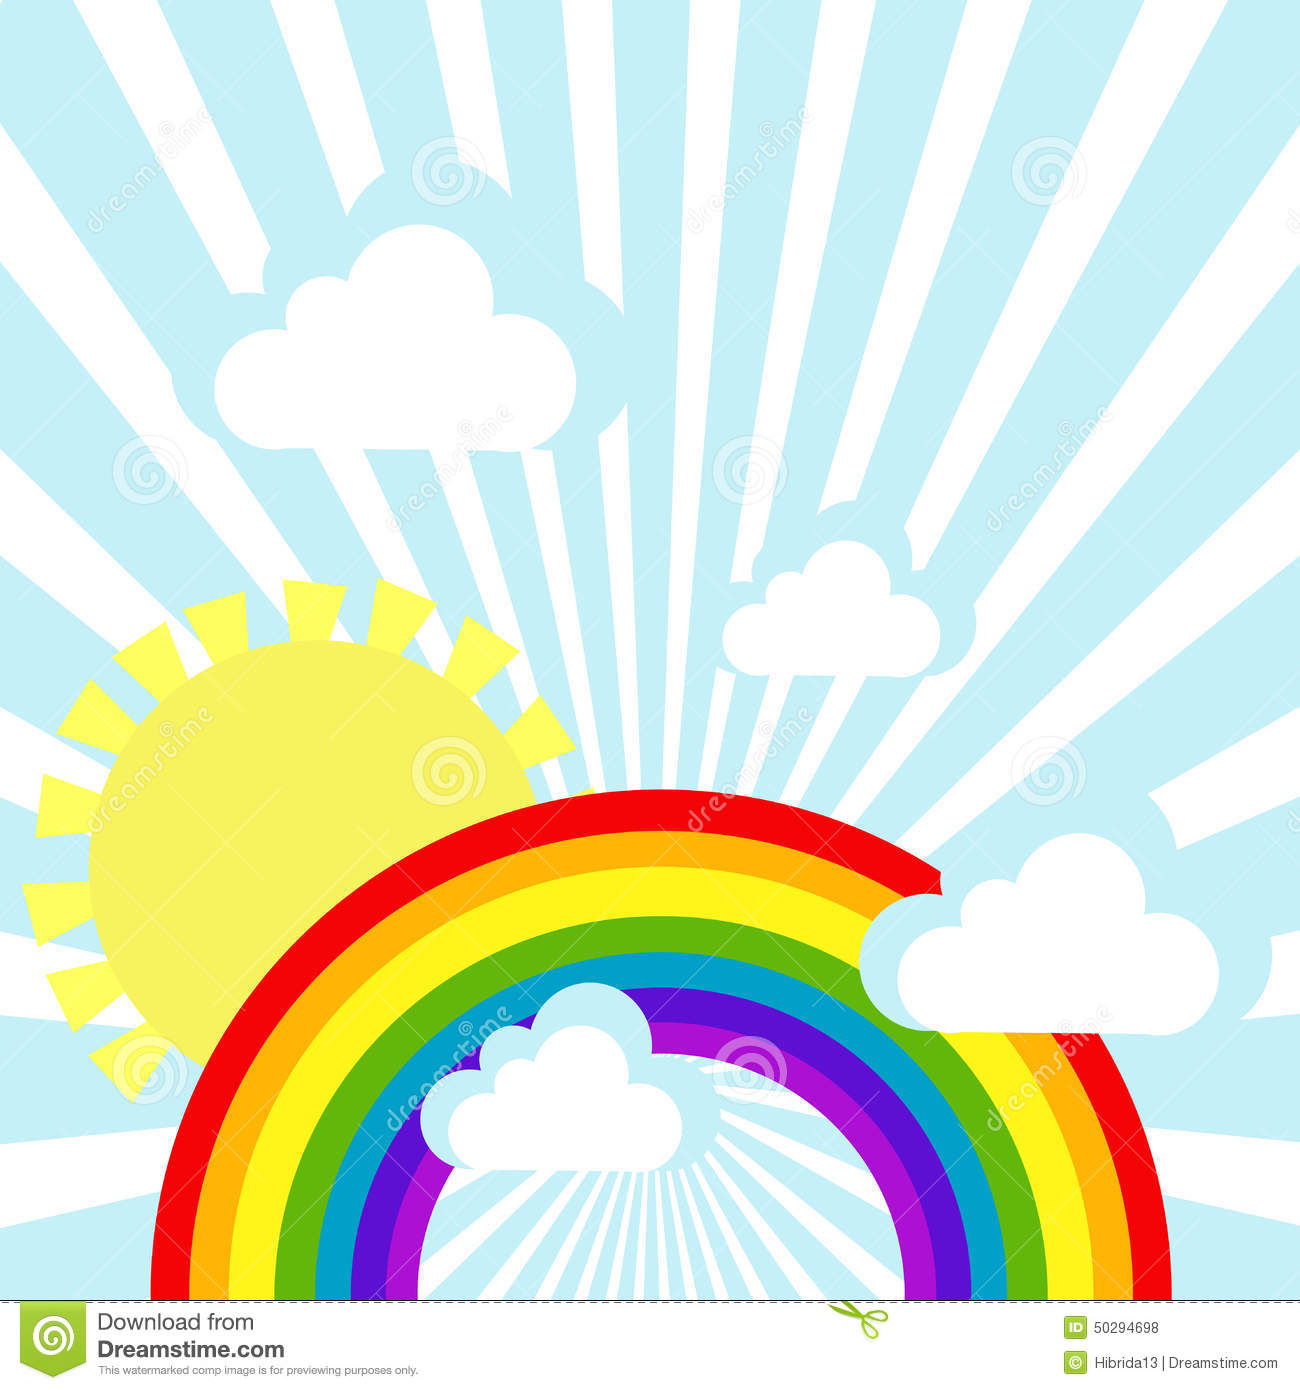 Sky background with clouds, sun and rainbow